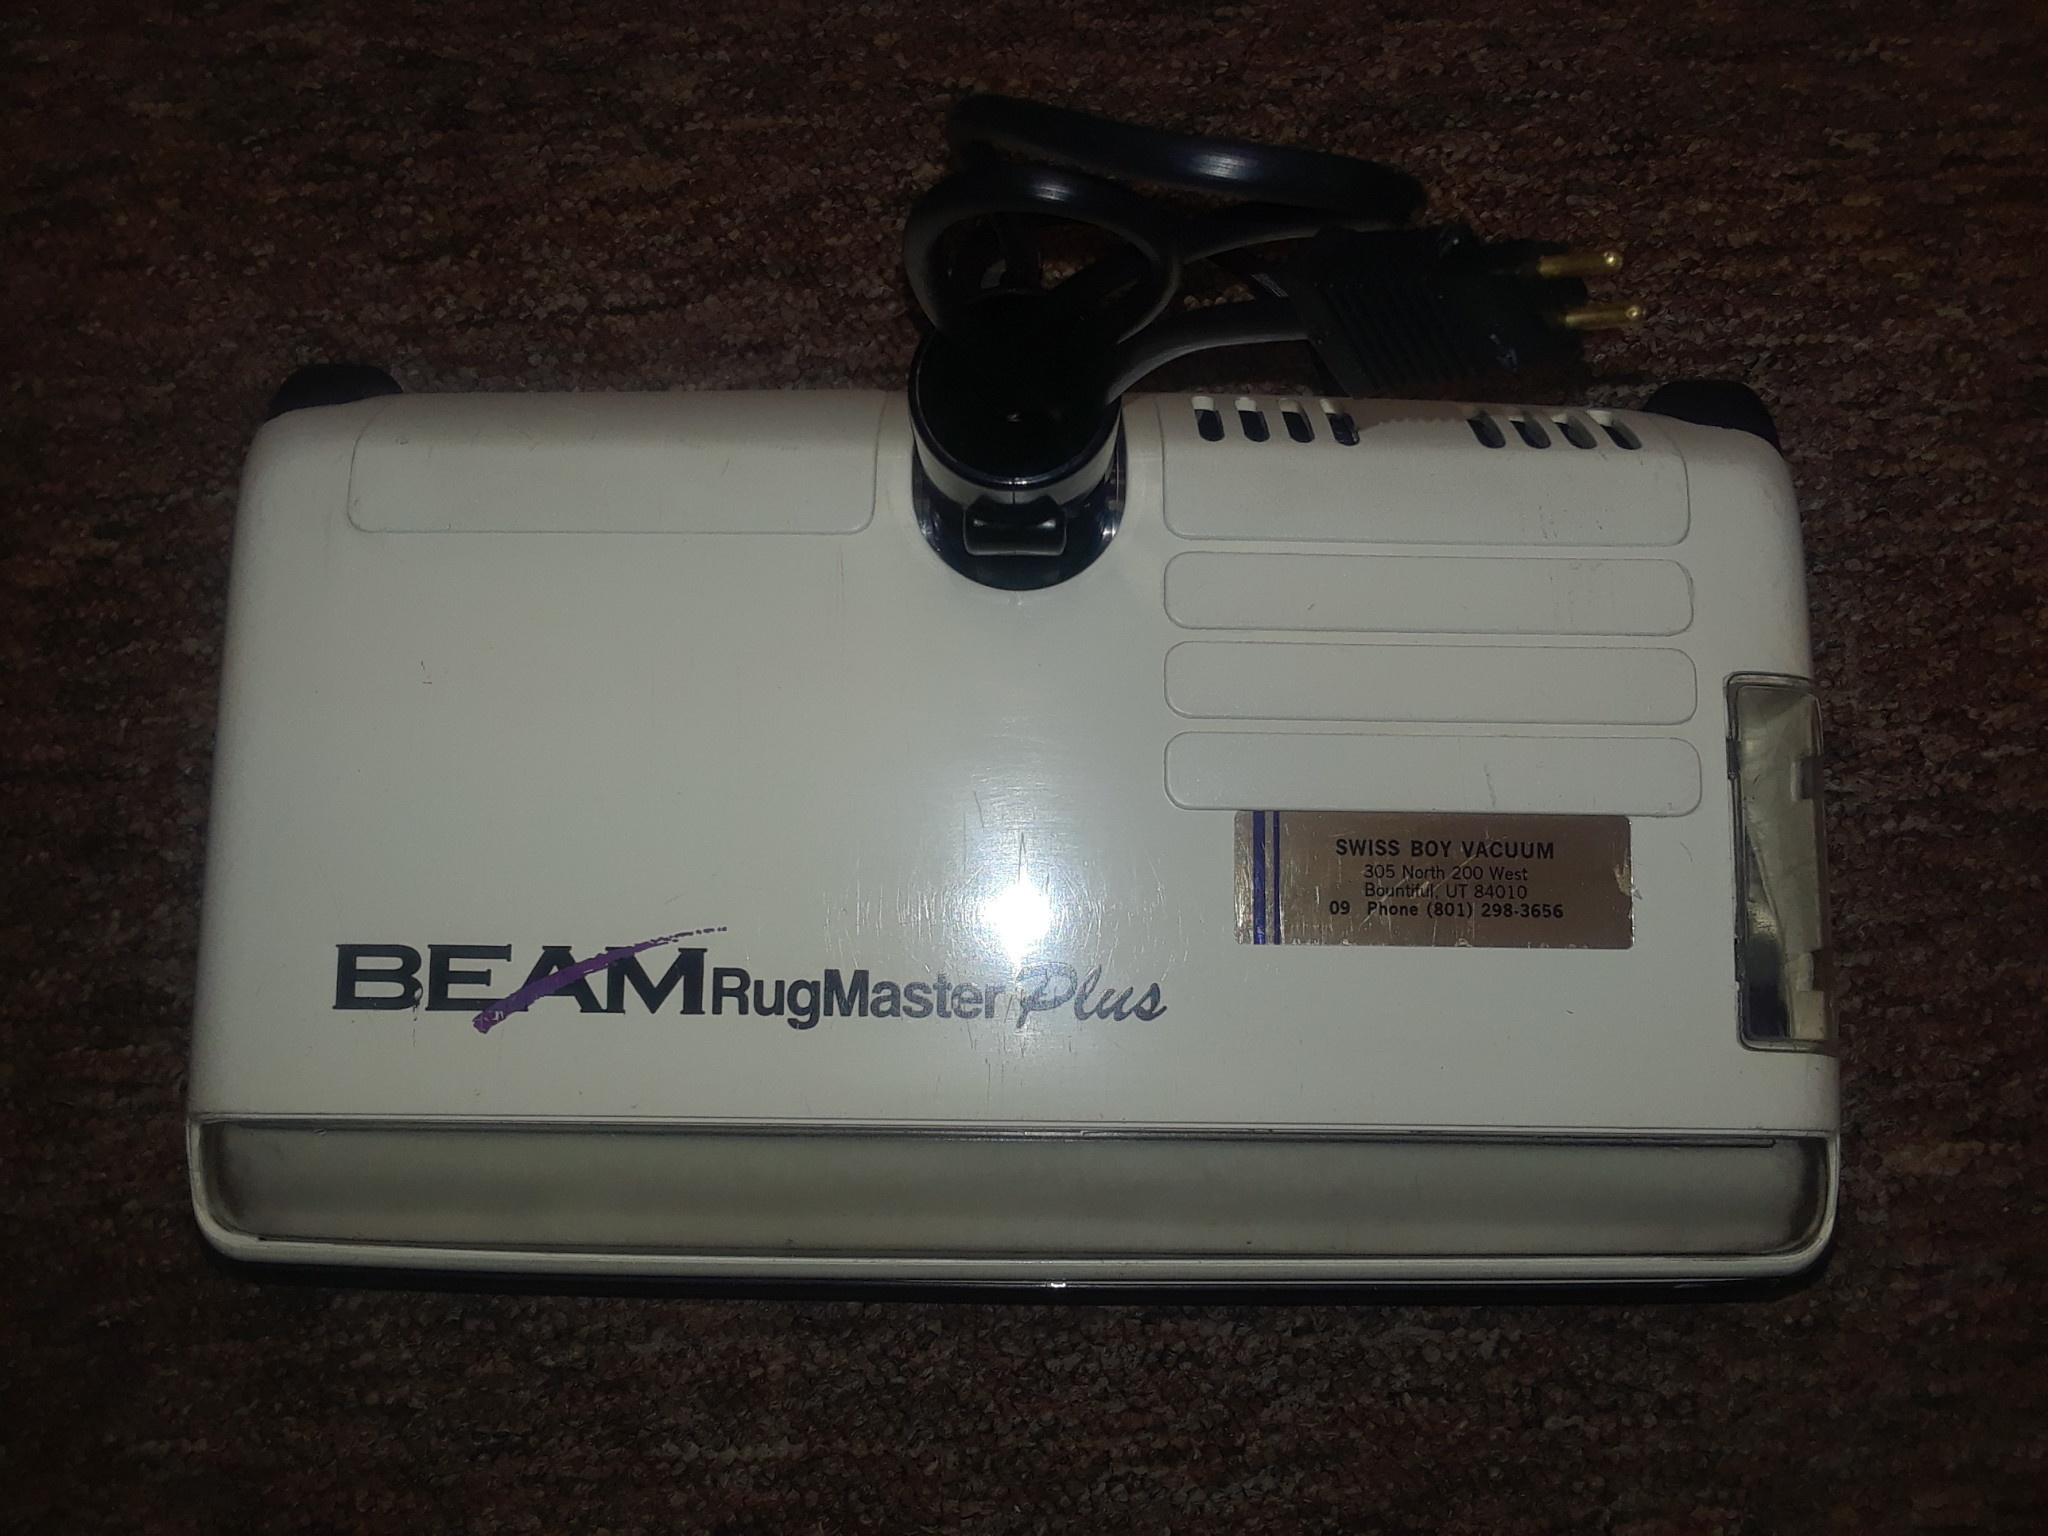 BEAM Refurbished Beam Rugmaster Plus - 07032019